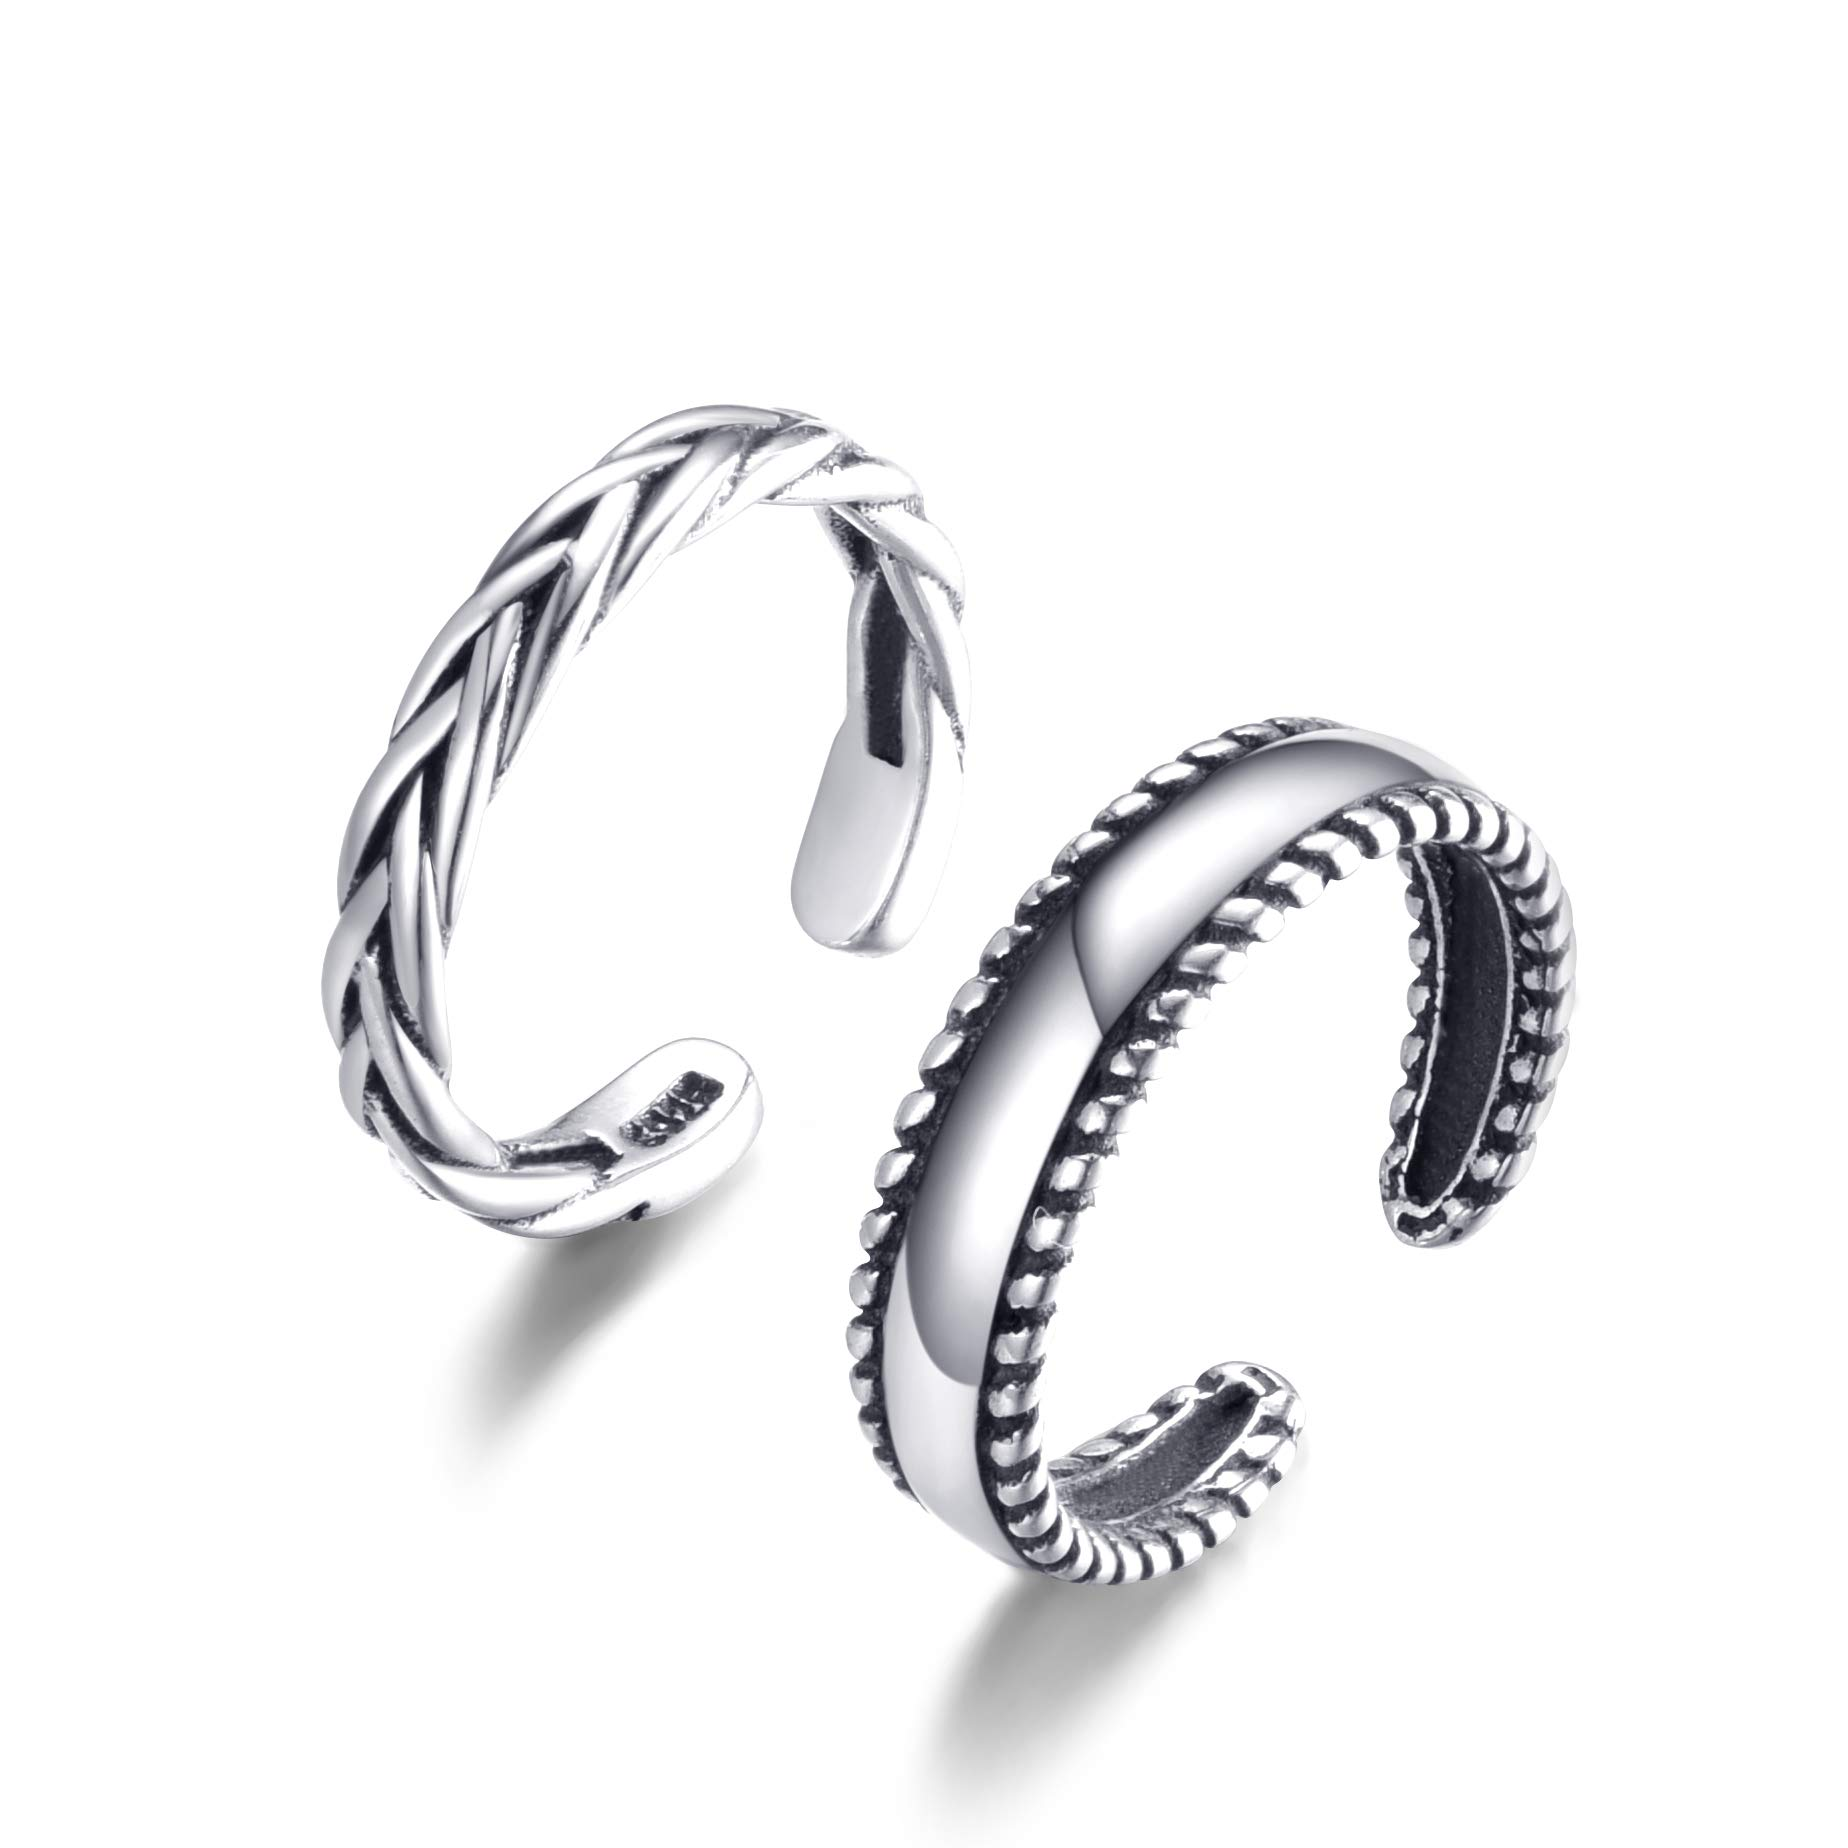 Cladtina 2PCS Sterling Silver Open Adjustable Toe Rings Vintage Braid Rings for Women Girls (Braided Style)